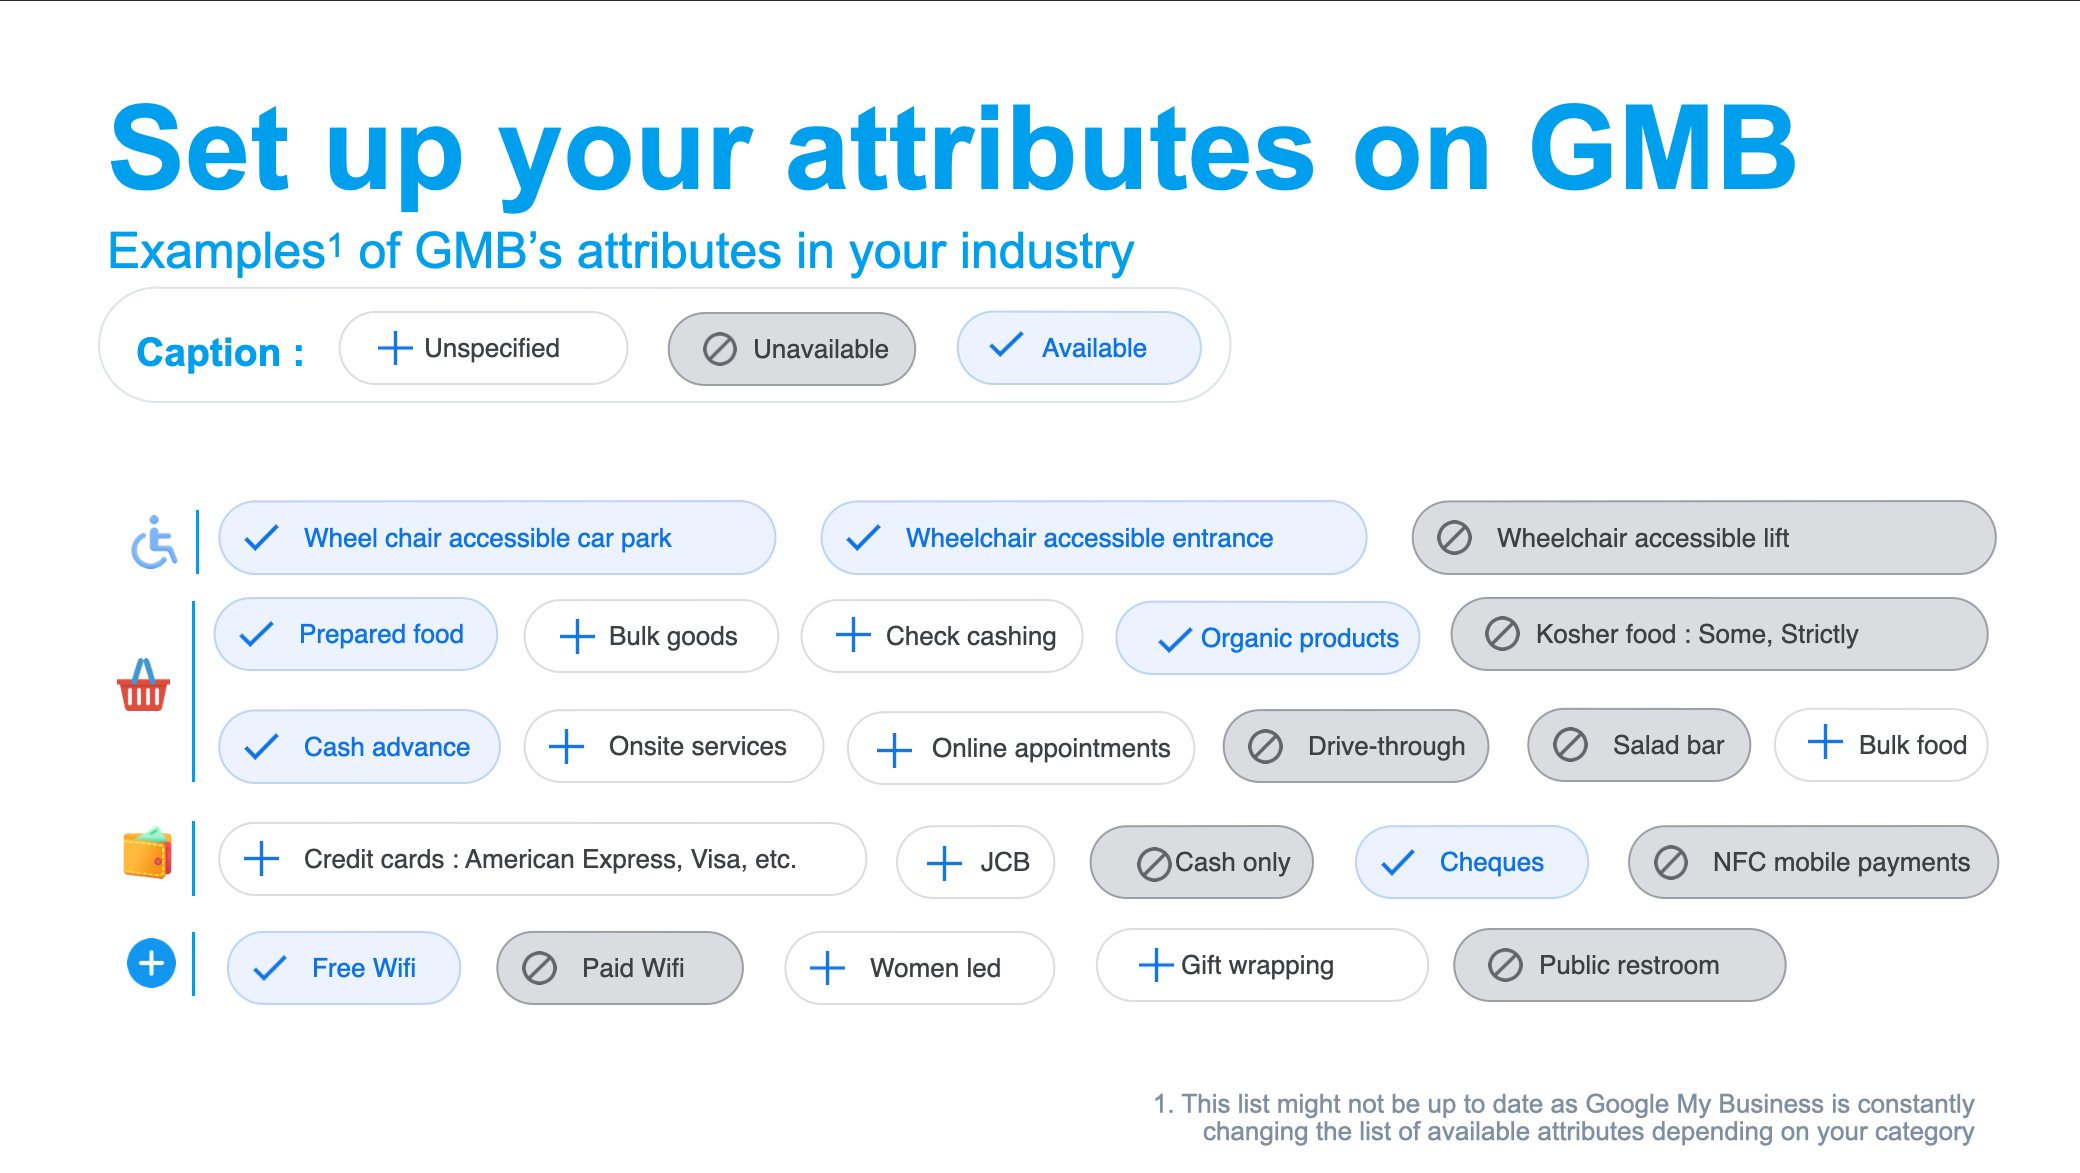 GMB attributes for supermarkets